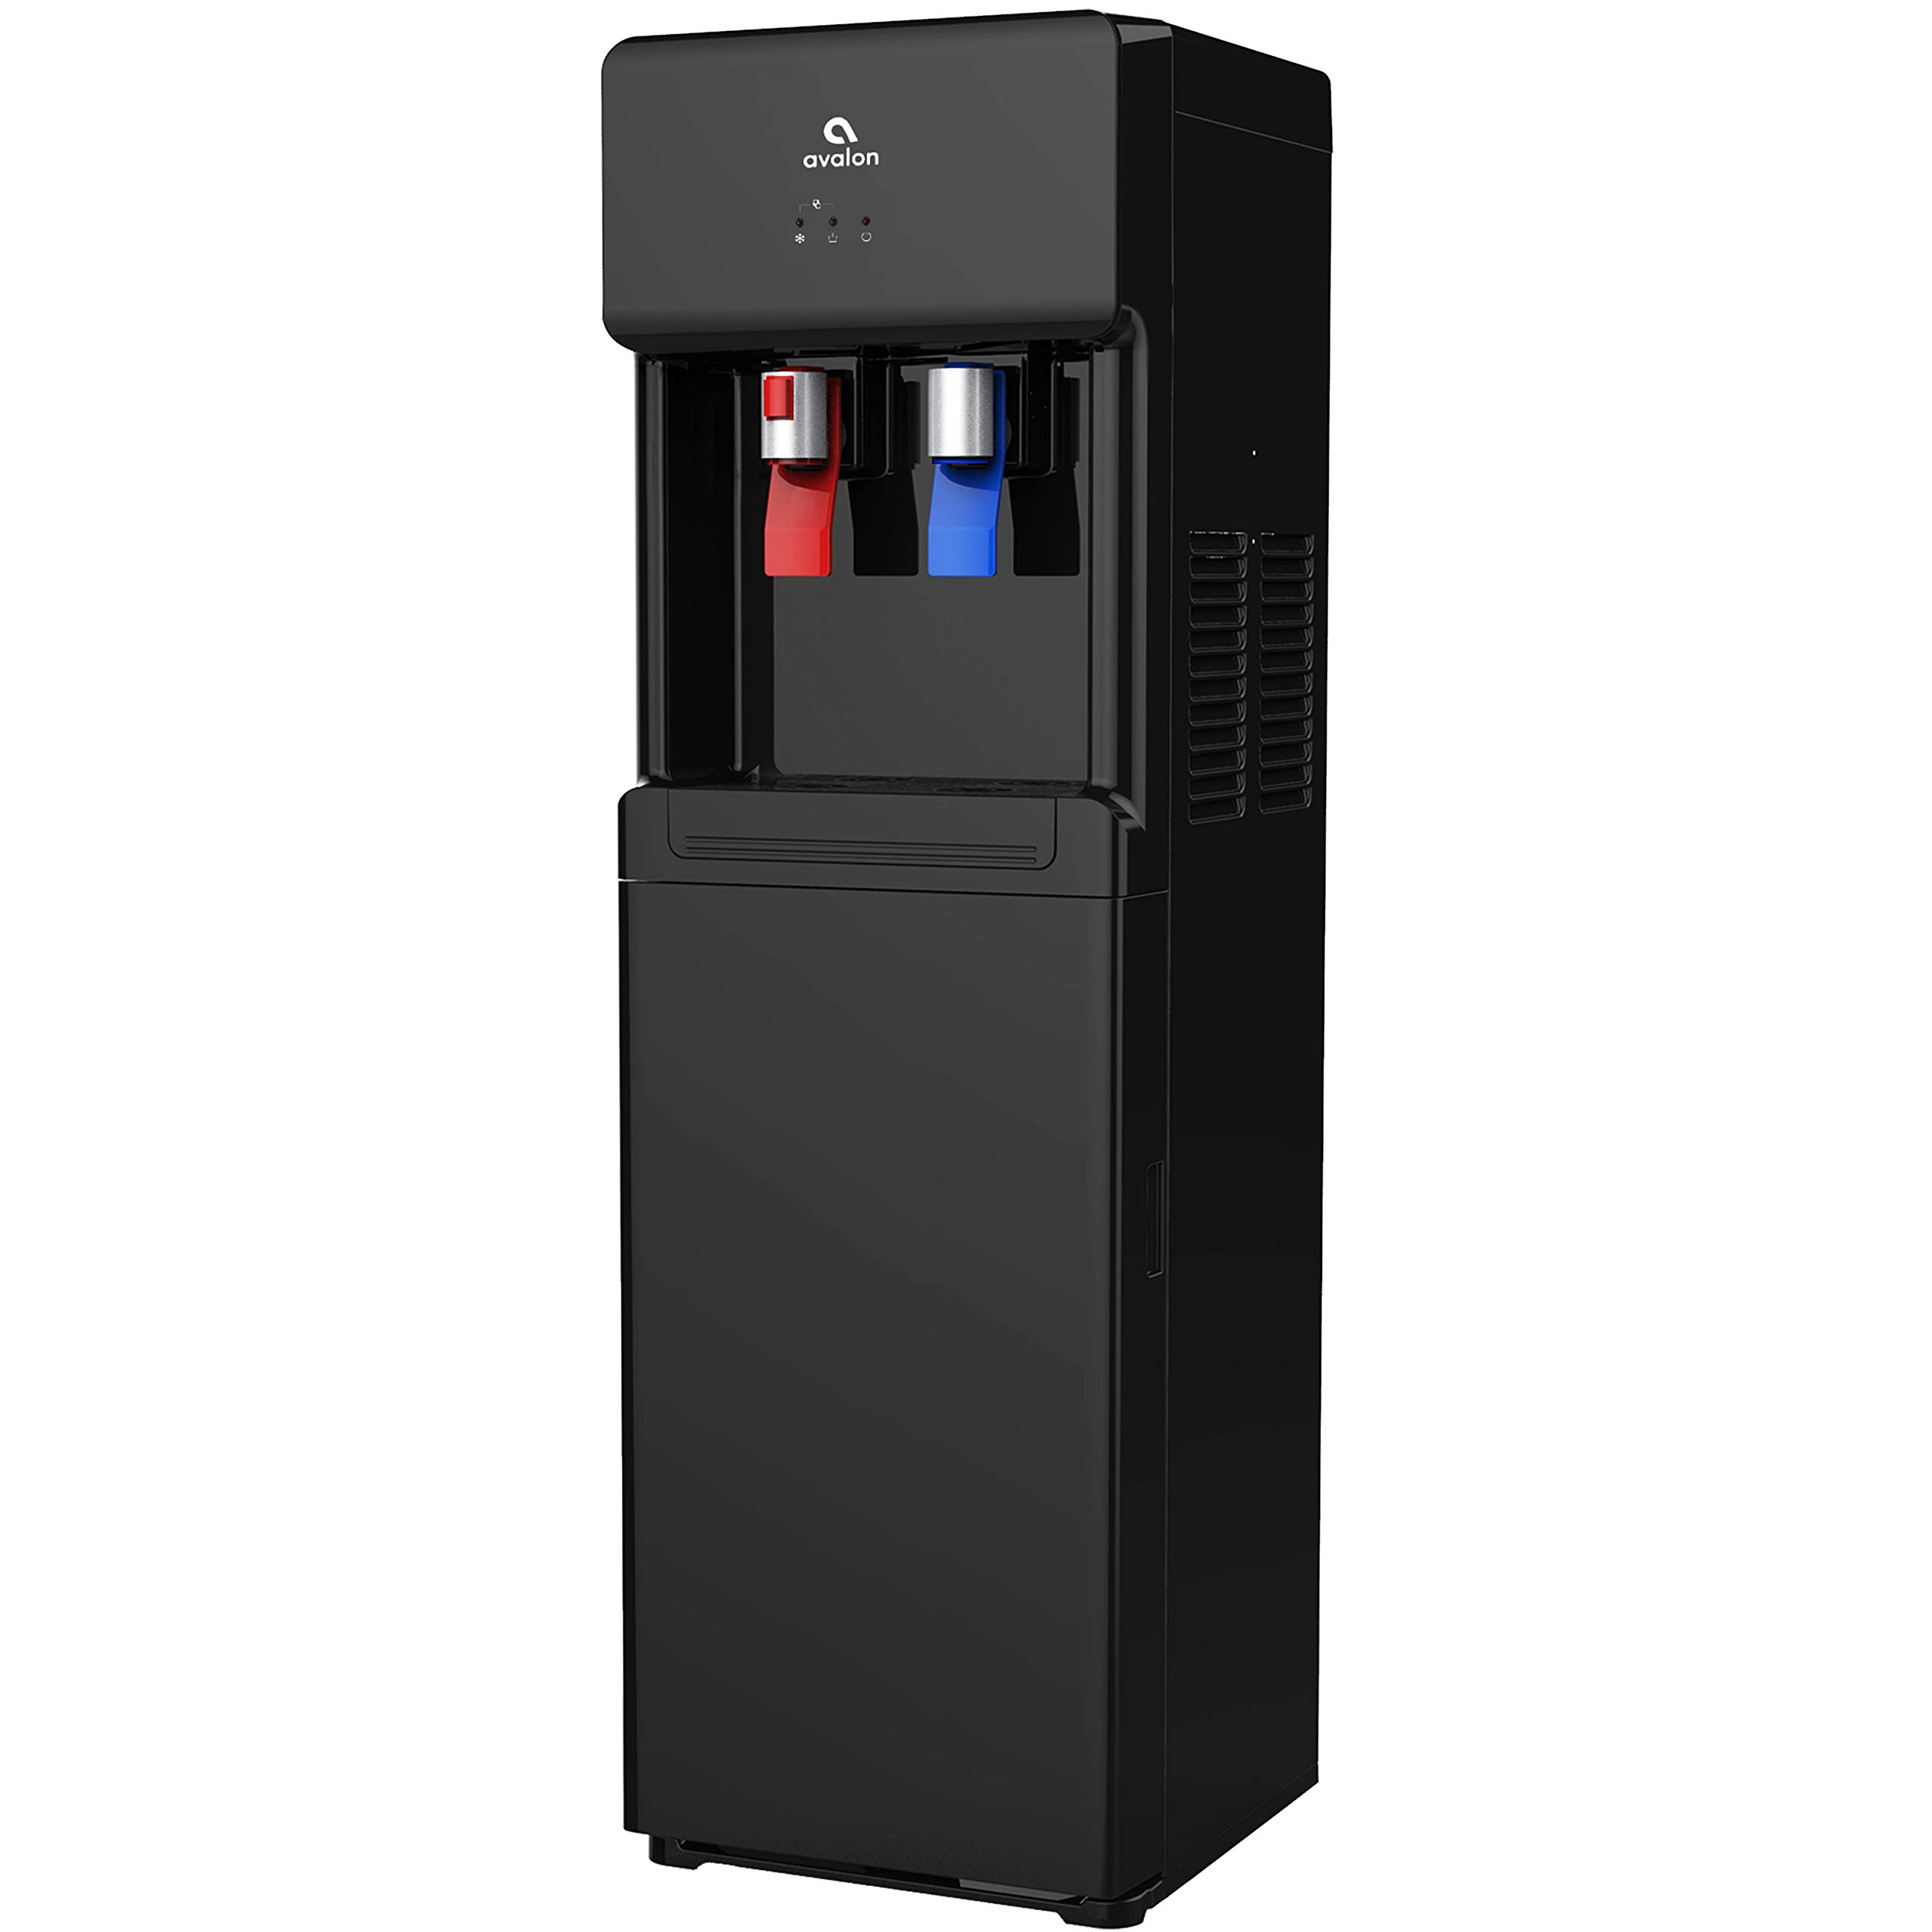 Avalon A6BLK A6 Bottom Loading Cooler Dispenser-Hot & Cold Water, Child Safety Lock, Innovative Slim Design (Black), free standing, by Avalon